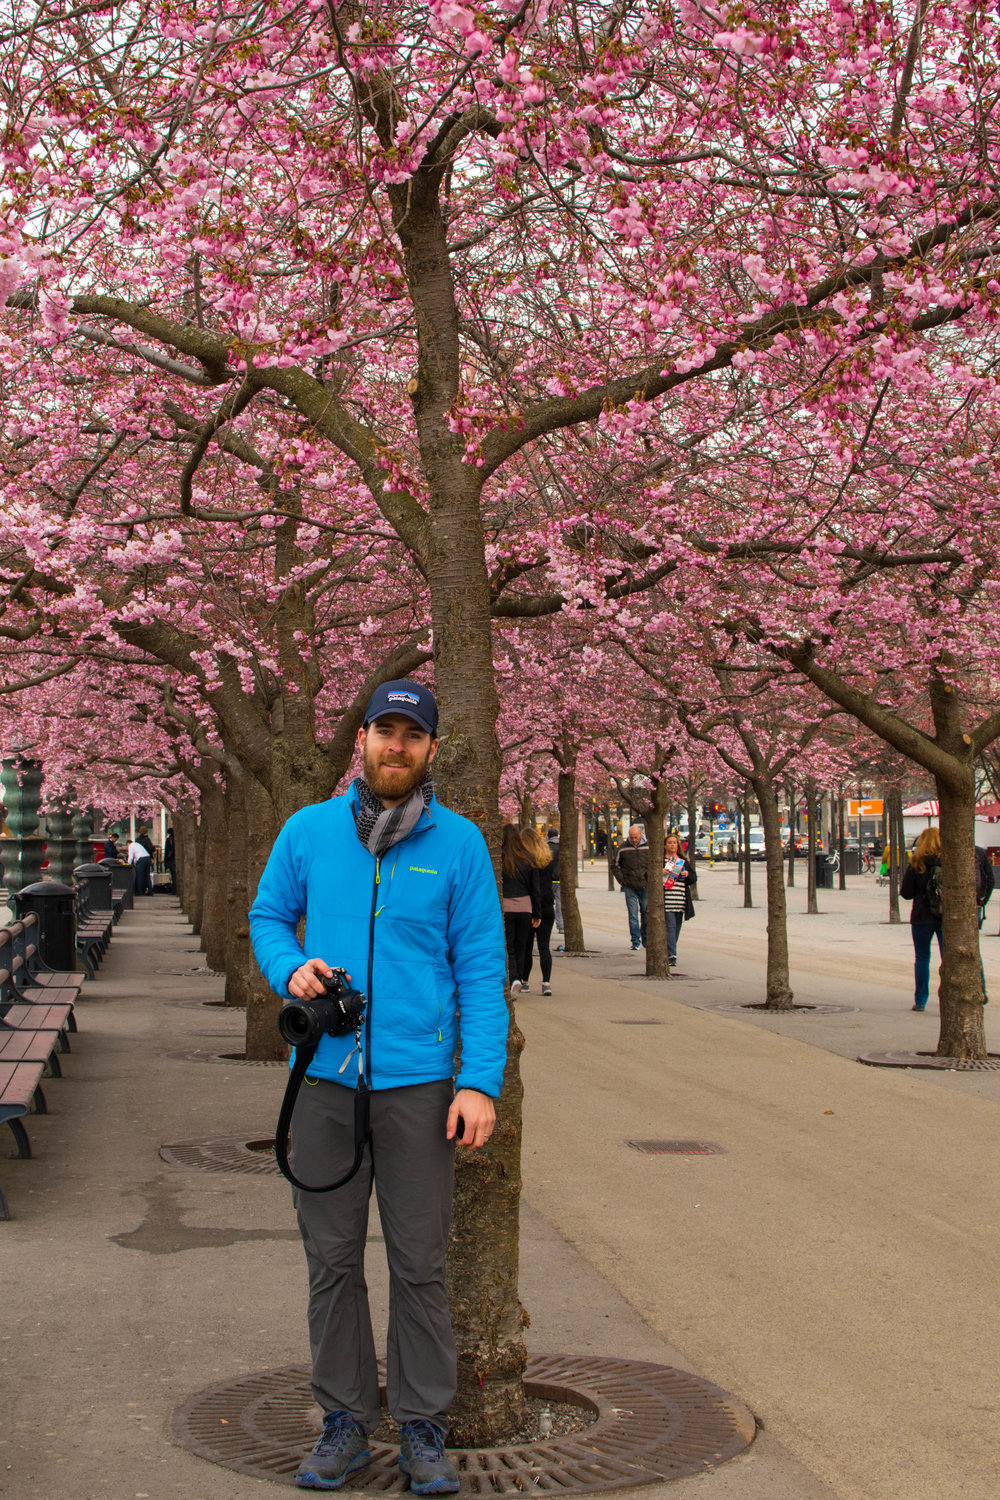 Nolan under cherry blossoms in Stockholm, Sweden